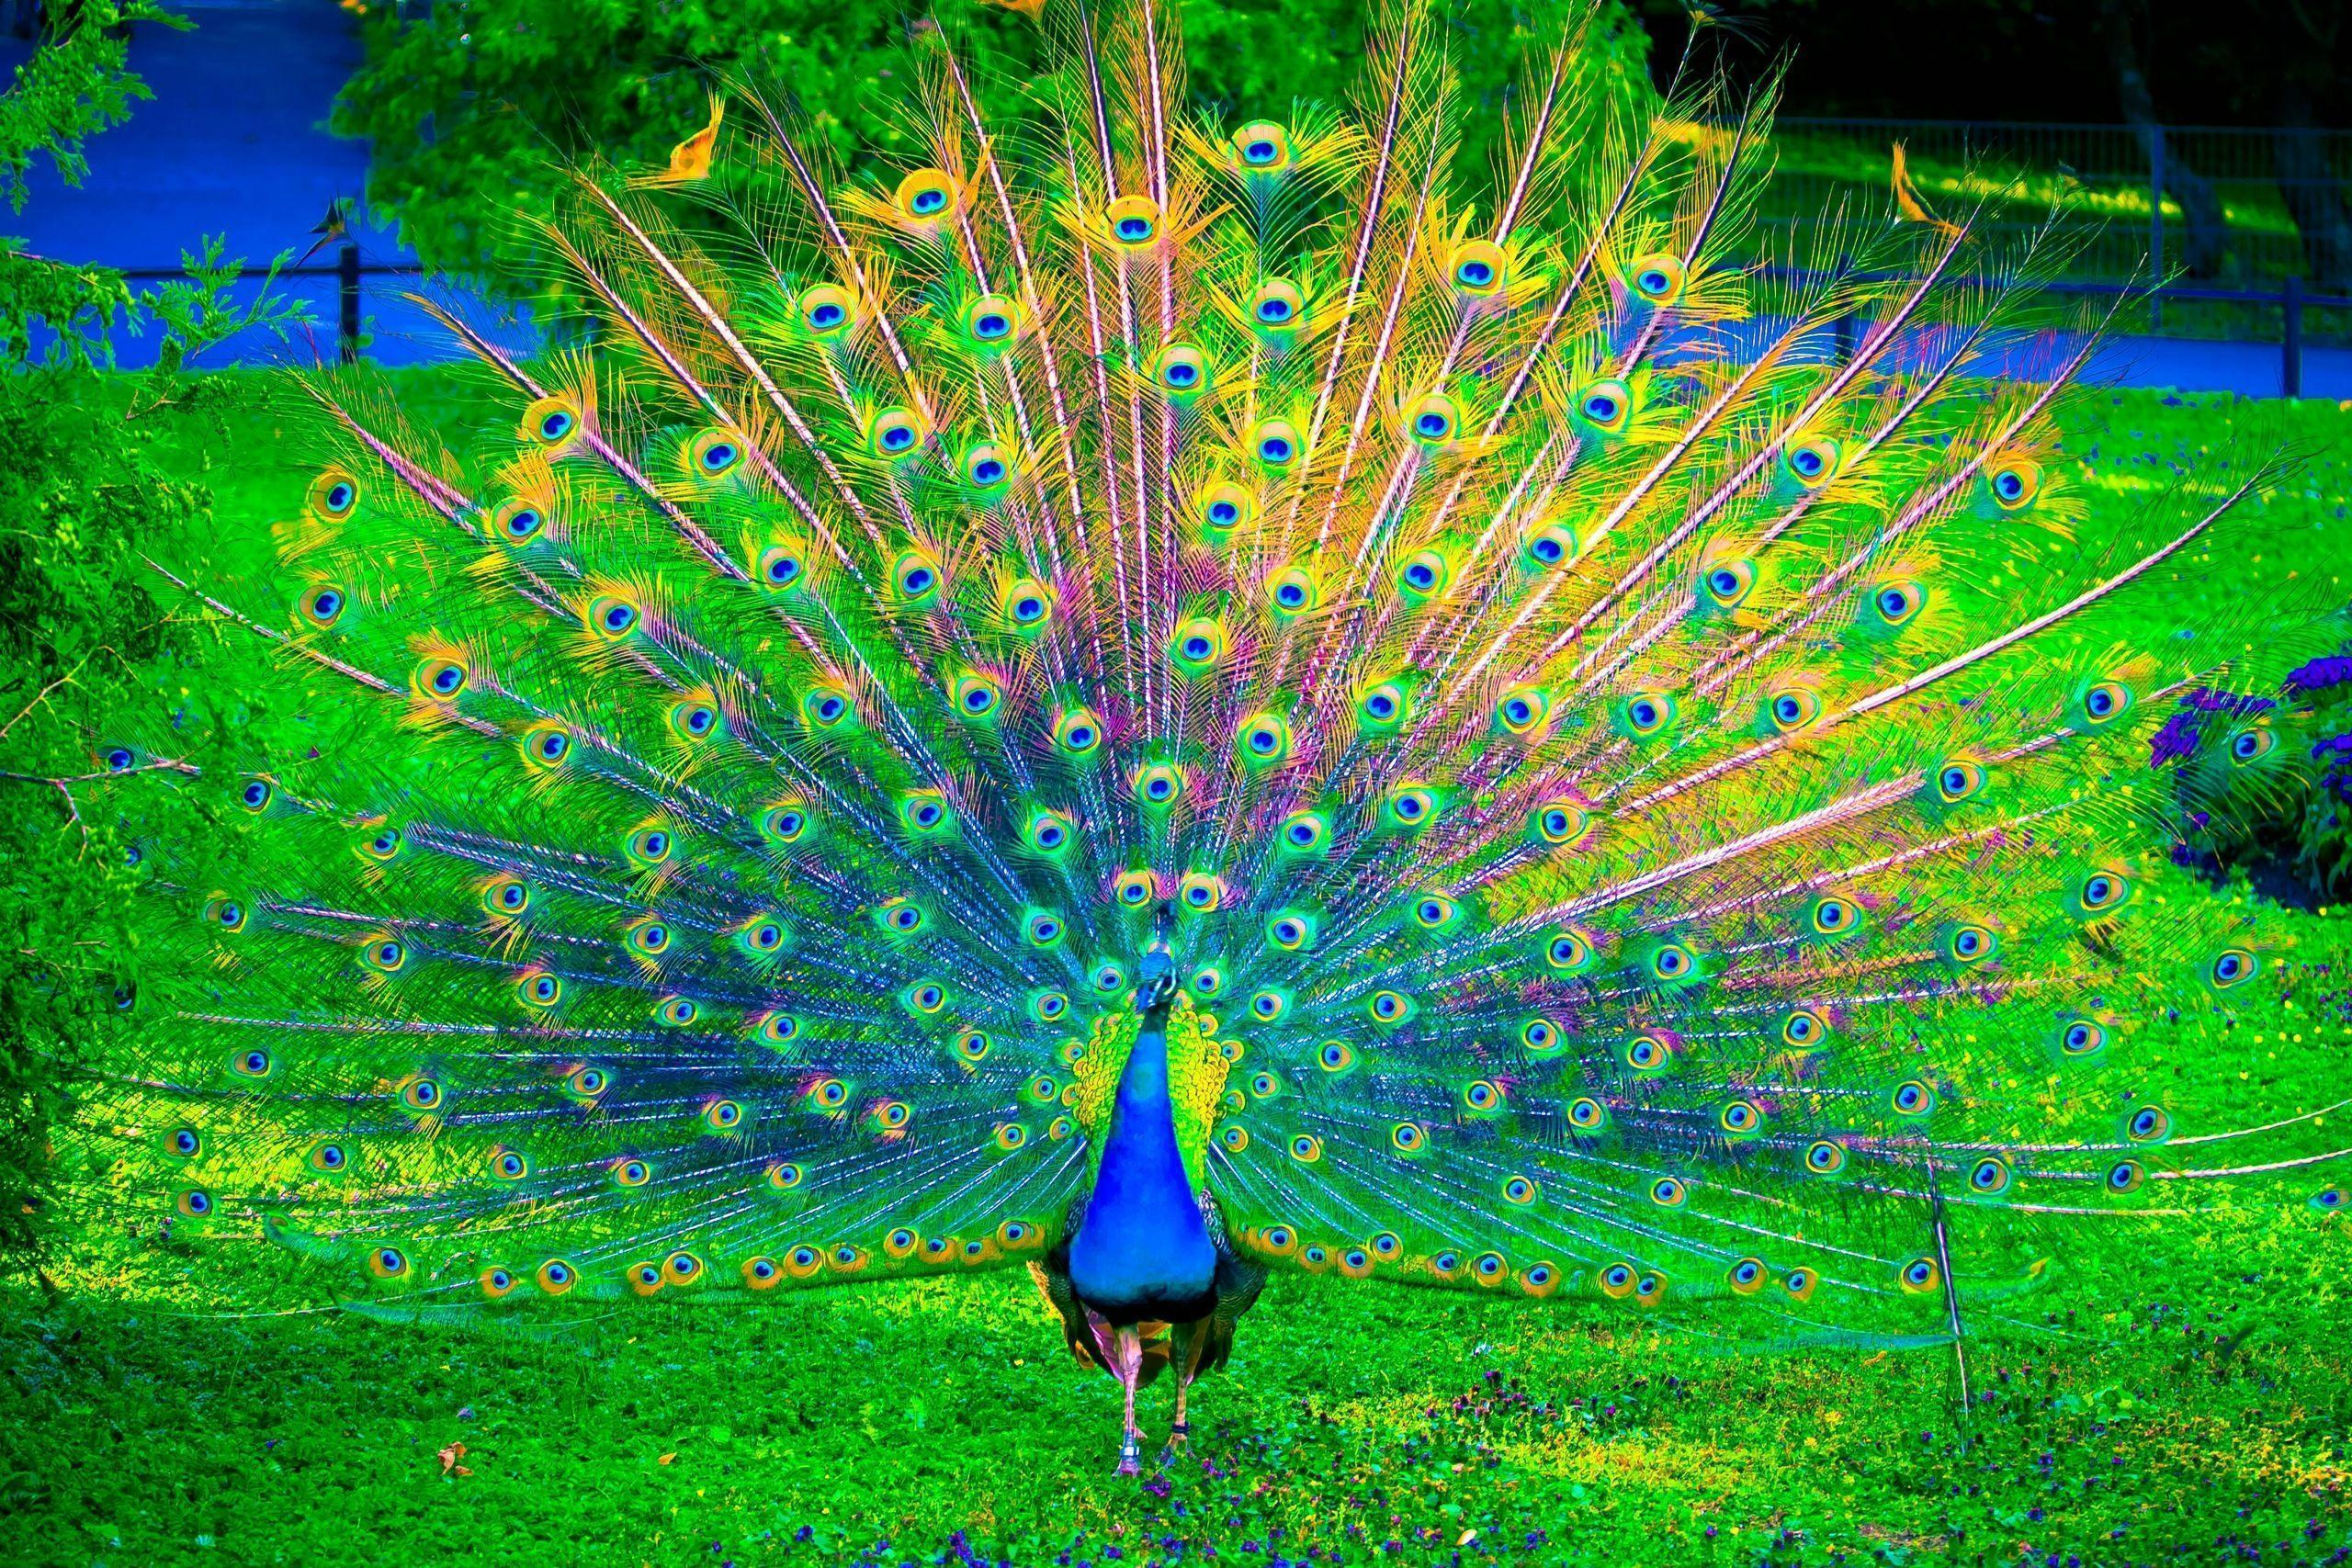 Wallpapers Of Peacock Feathers Hd 2017 Wallpaper Cave